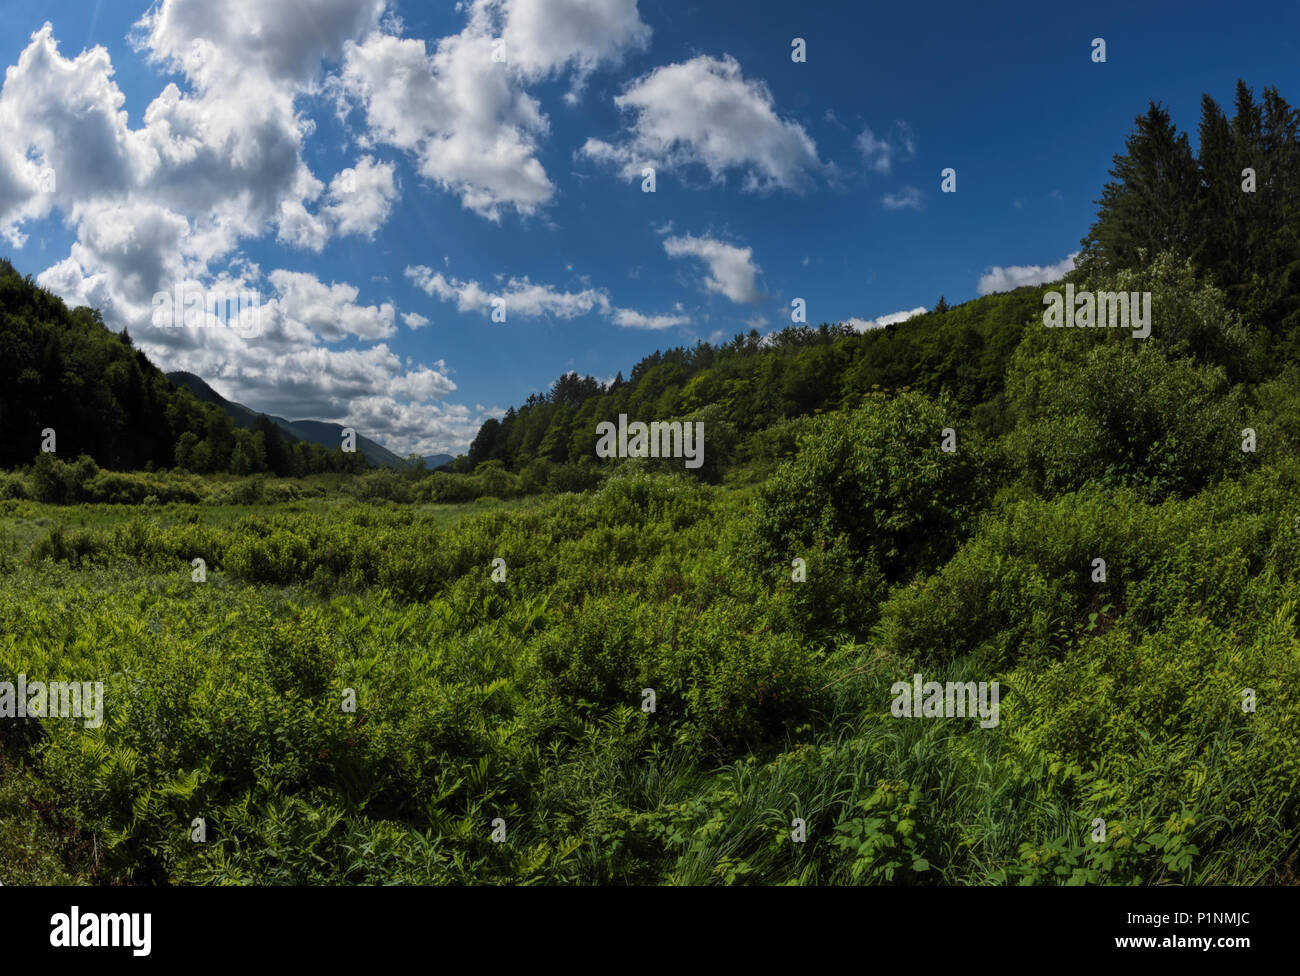 Lush landscape with blue sky and fluffy clouds. - Stock Image